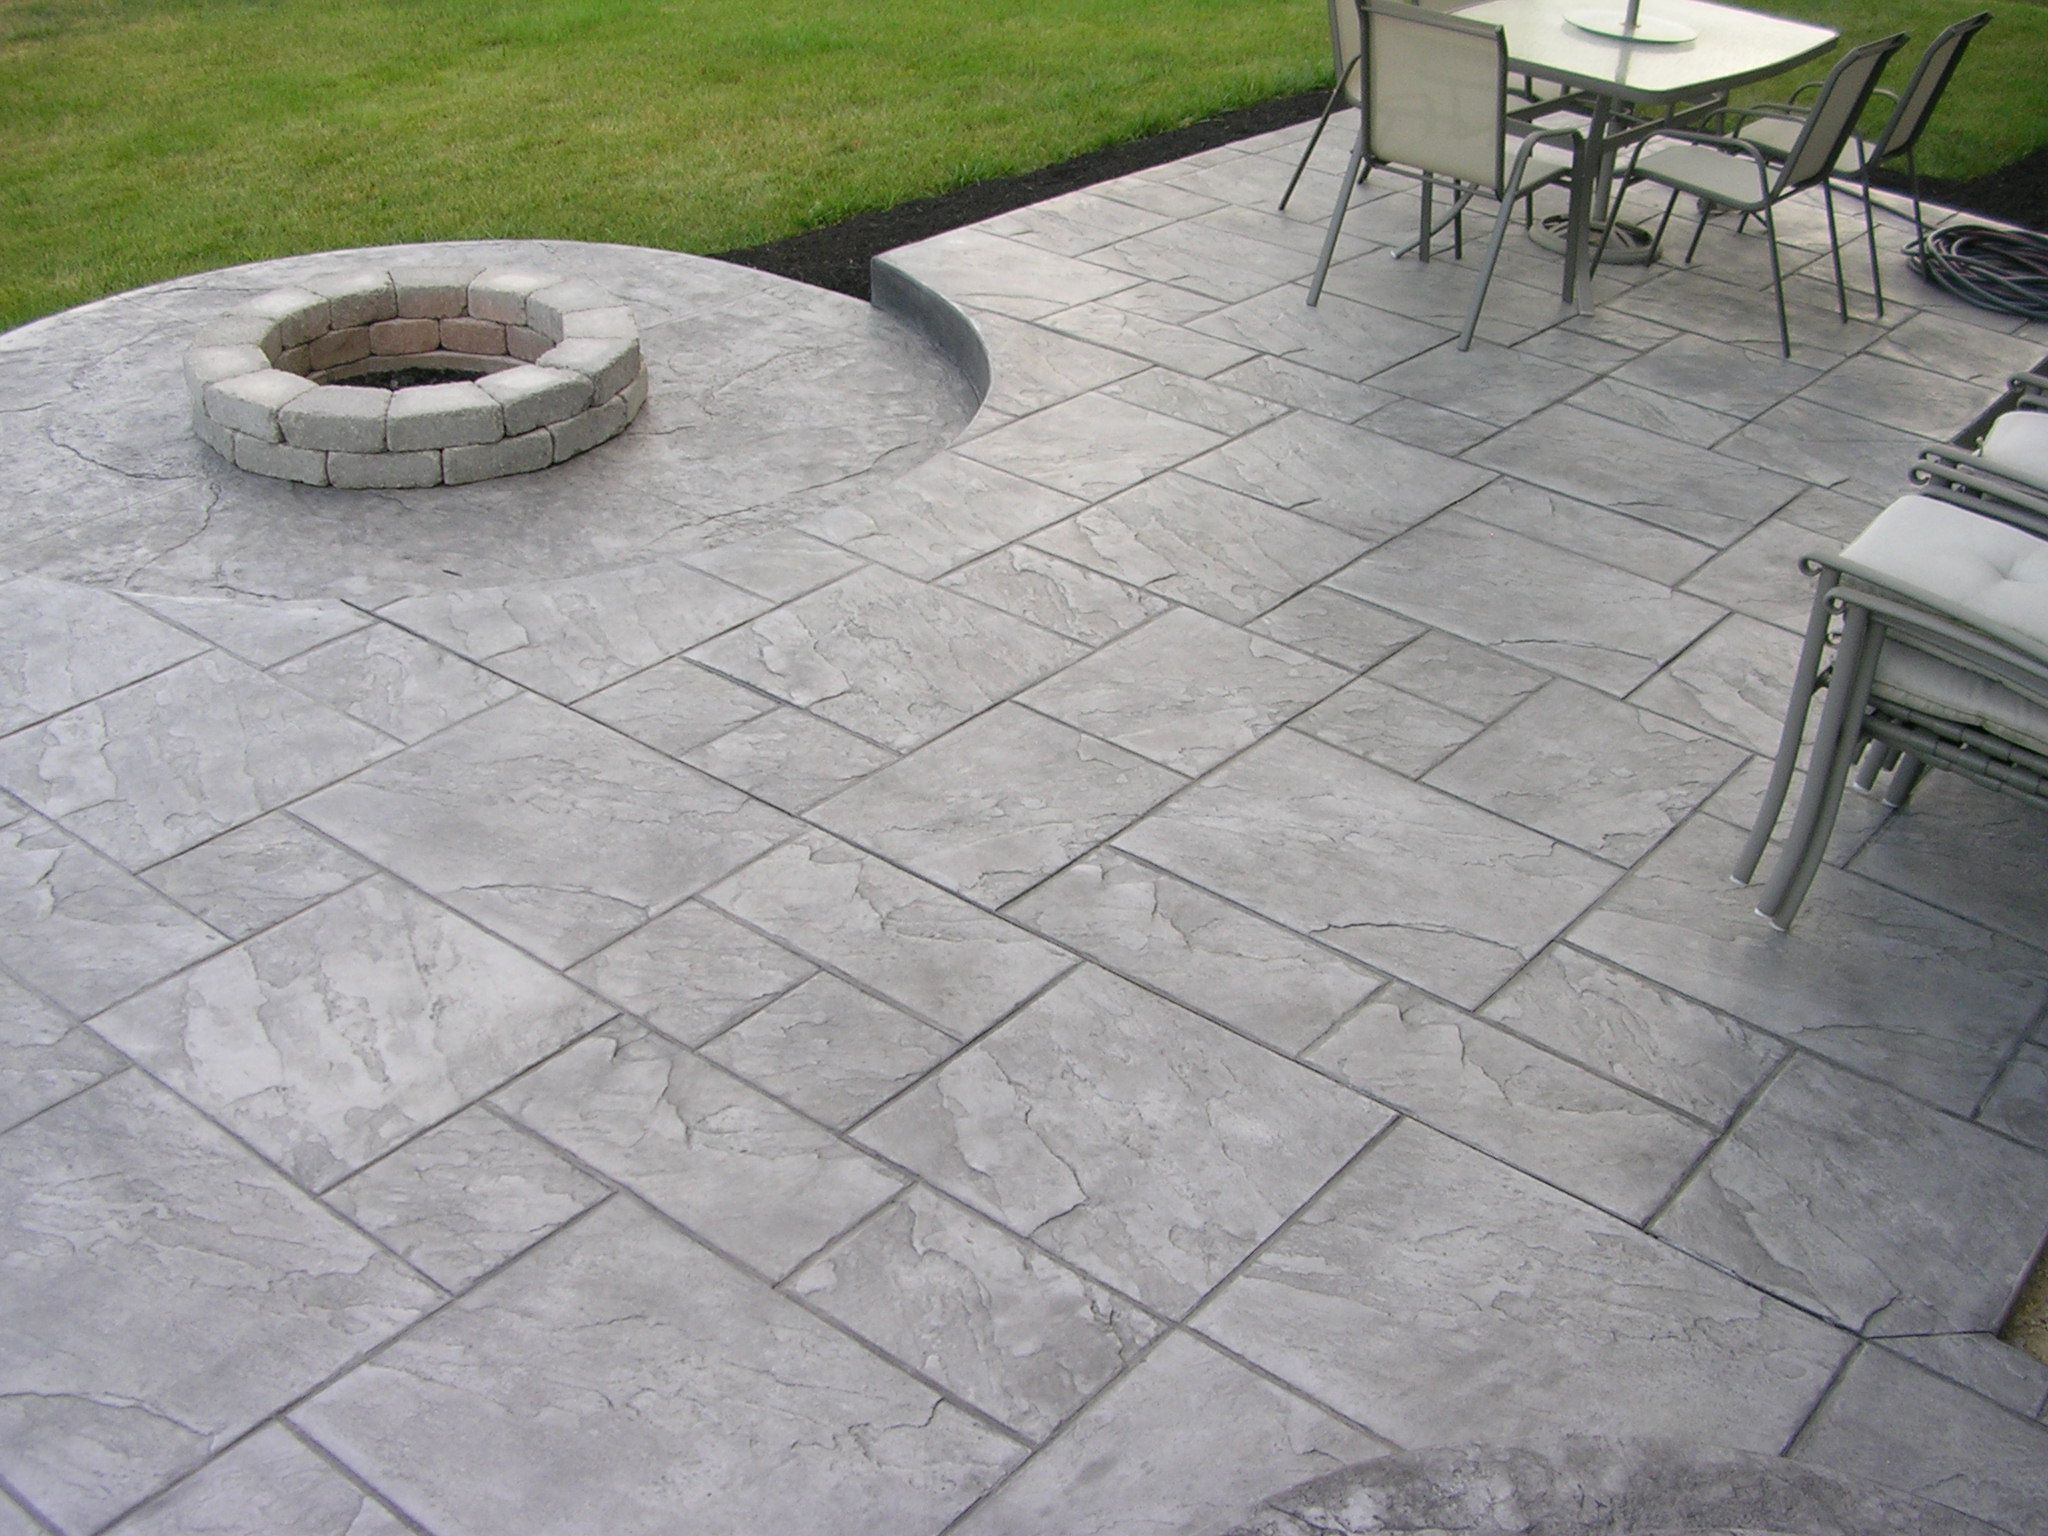 Superbe Stamped Concrete Patios, Driveways, U0026 Walkways: Columbus, Ohio | Custom  Concrete Plus